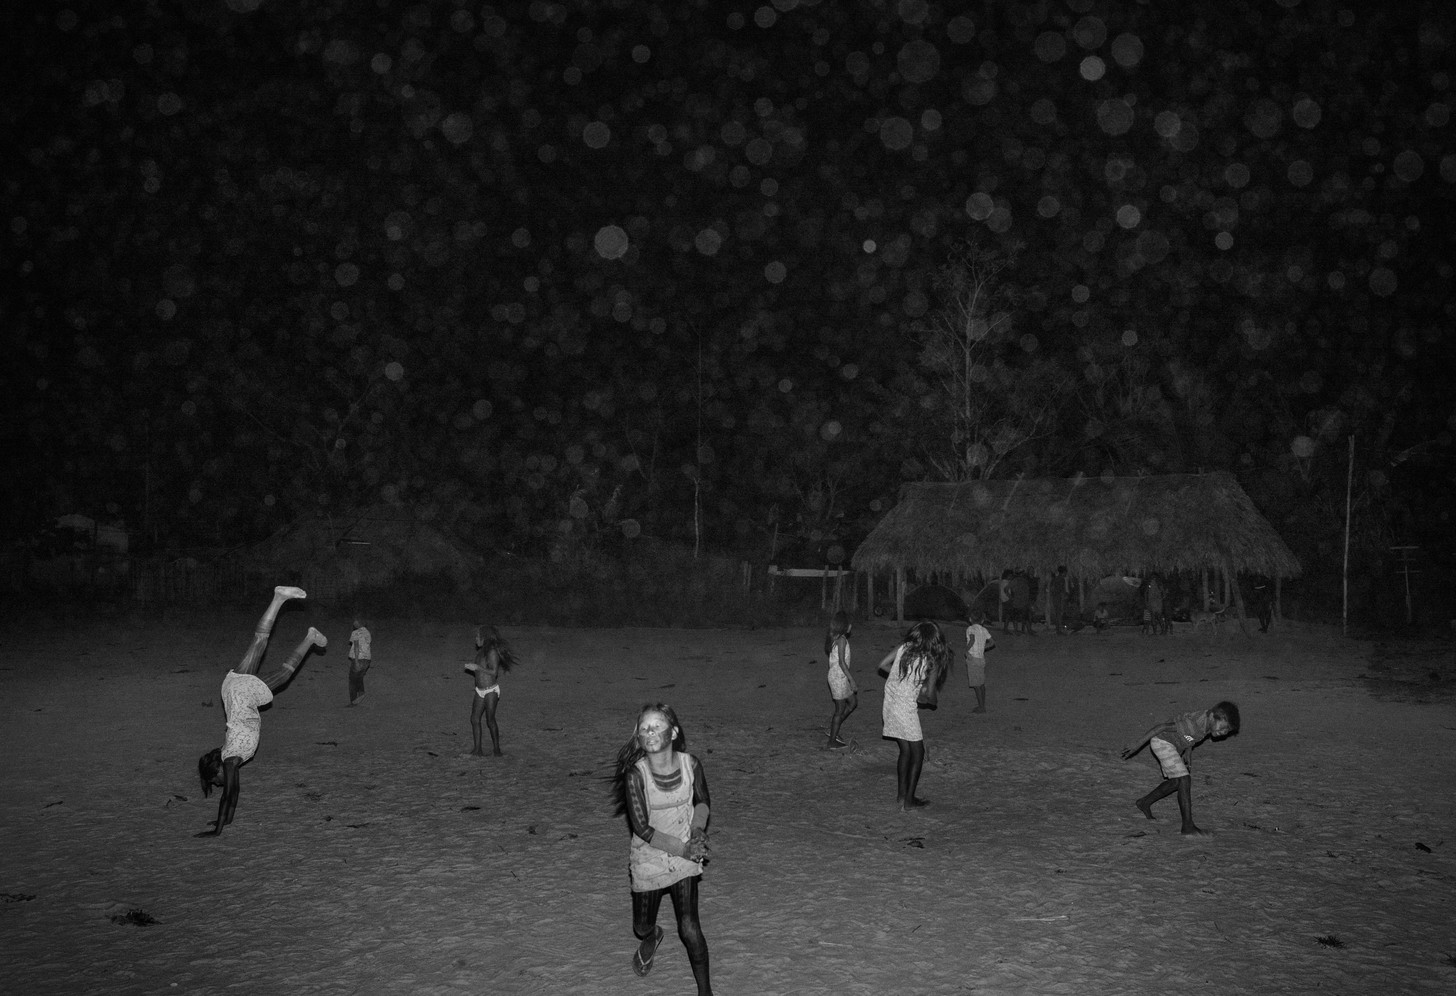 Kayapo indigenous children play at night in the Kubenkrãnken village, southern Pará state. The Kayapo have only been in contact with non-indigenous society since the 1960s. Their land serves as a crucial barrier to deforestation advancing from the south.